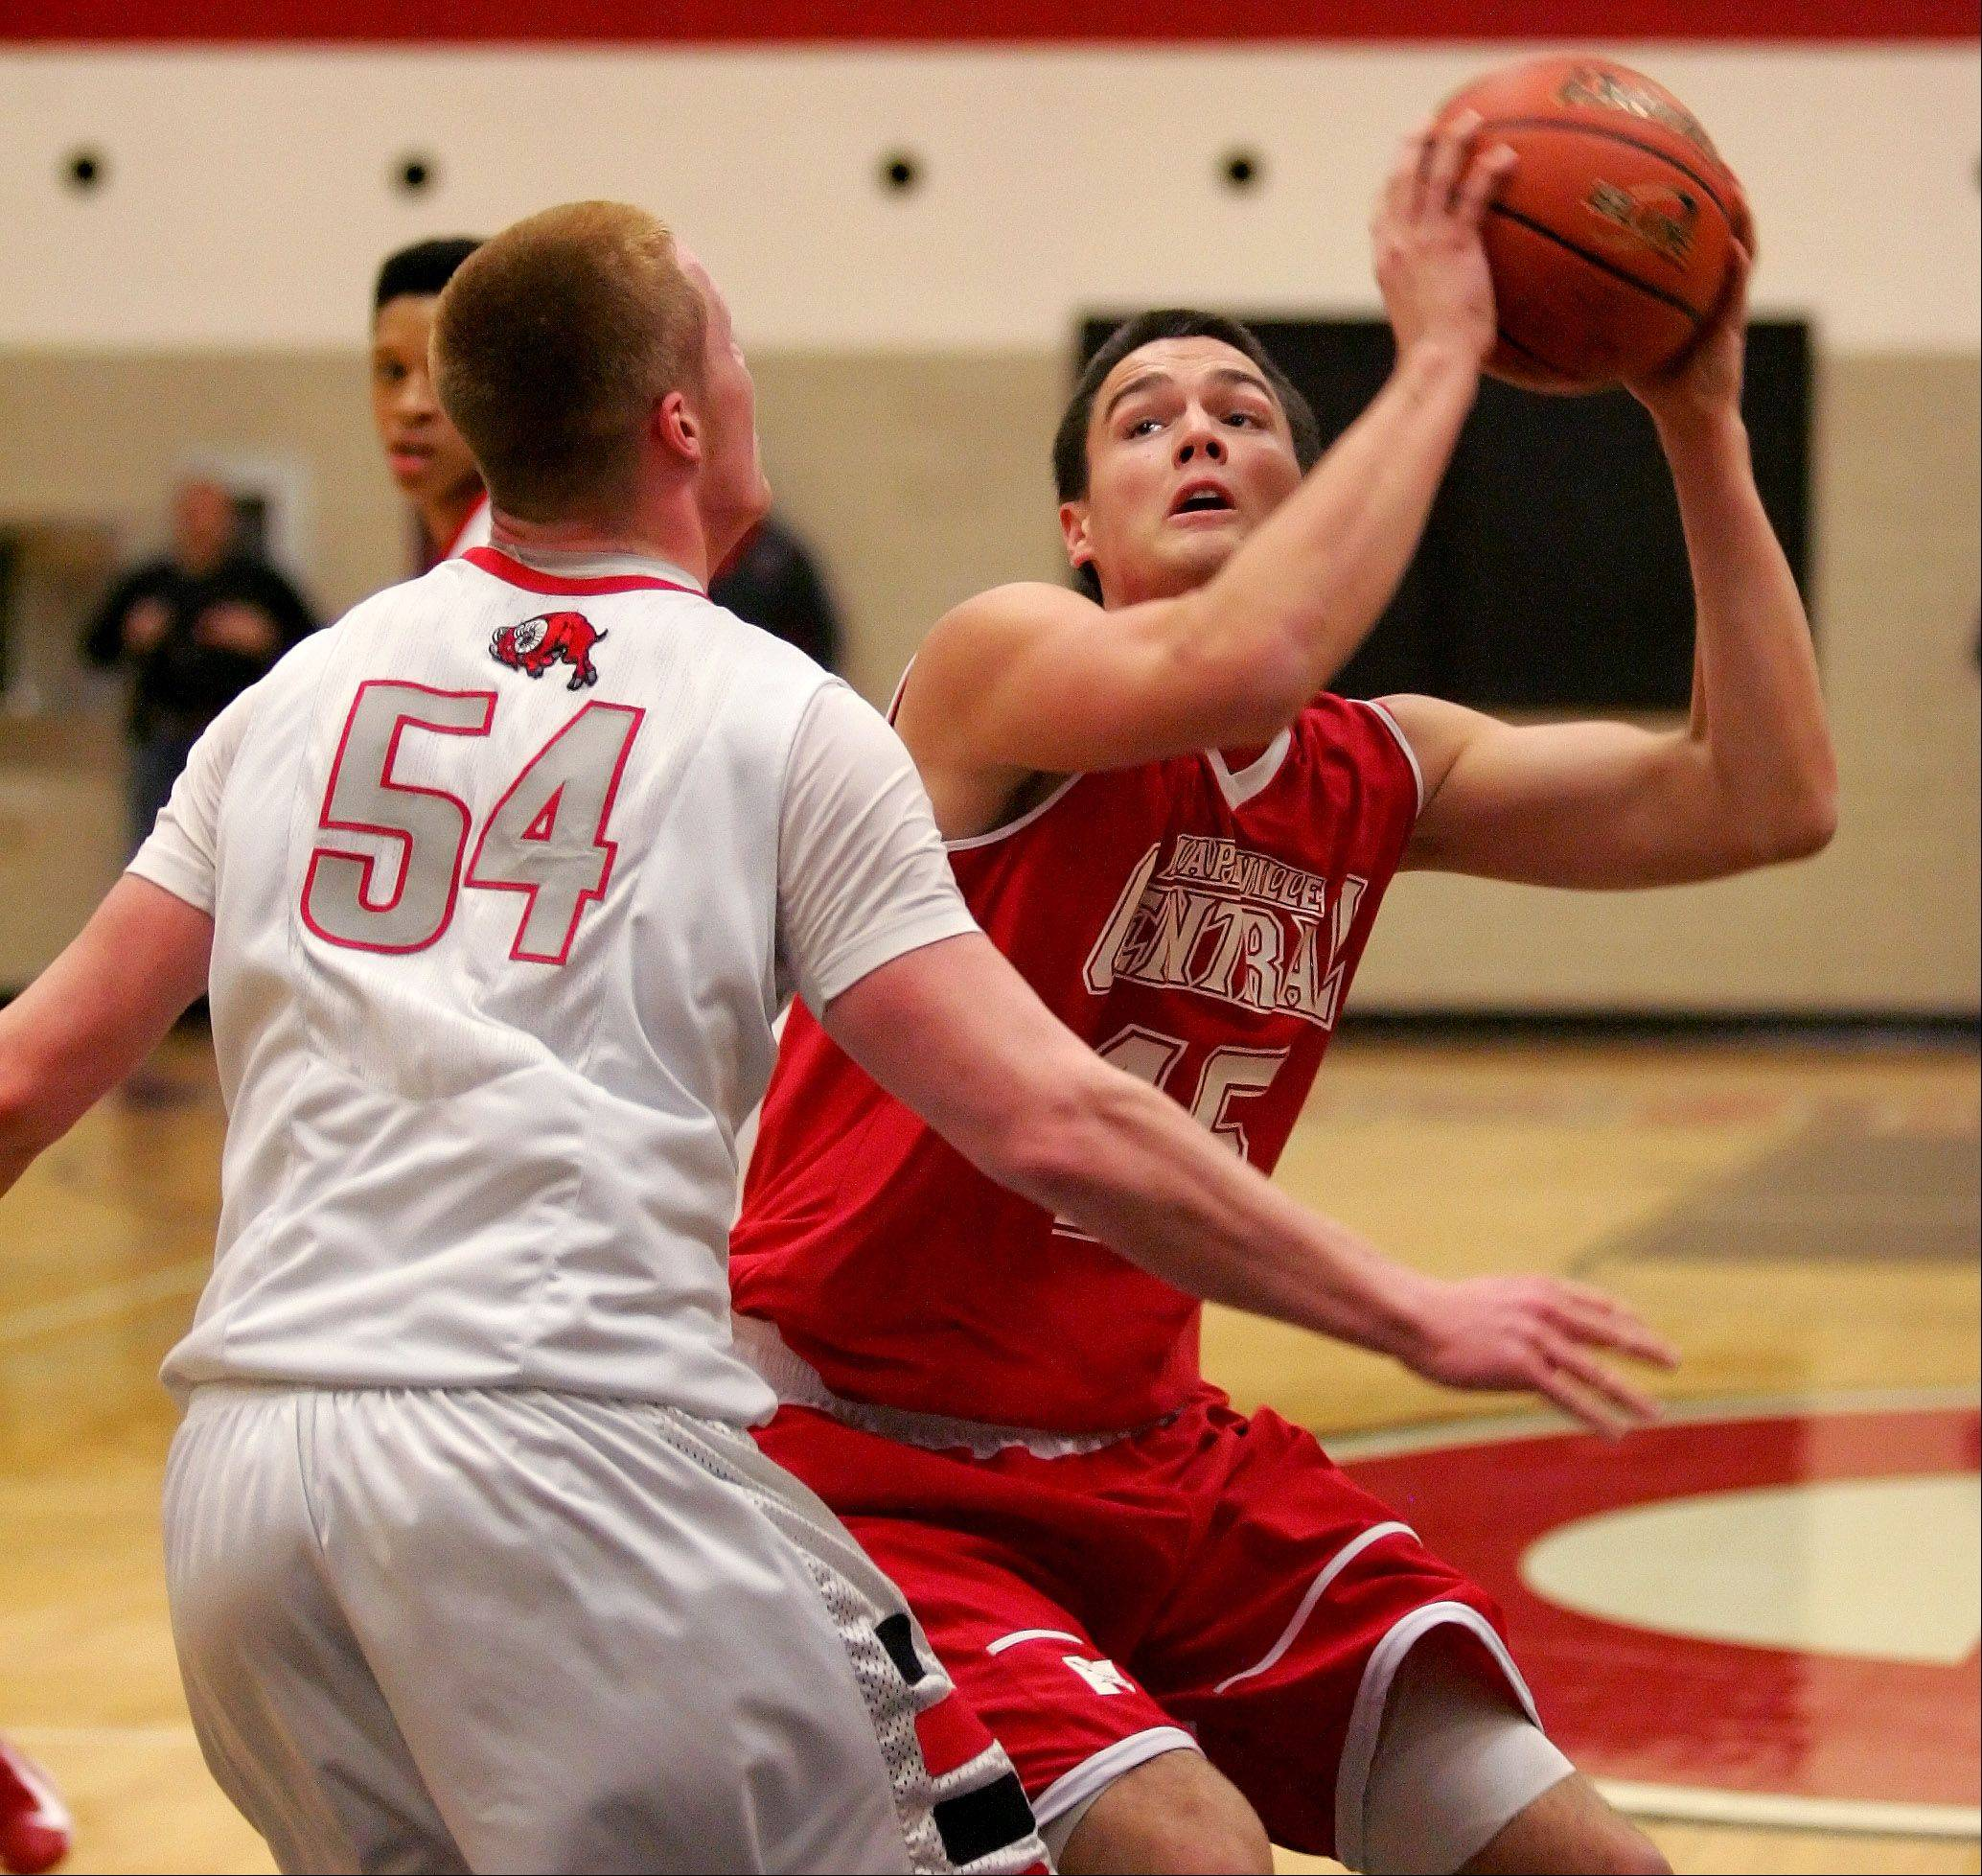 Nick Czarnowski of Naperville Central, right, looks for room to shoot around Brandon Havenga of Glenbard East.